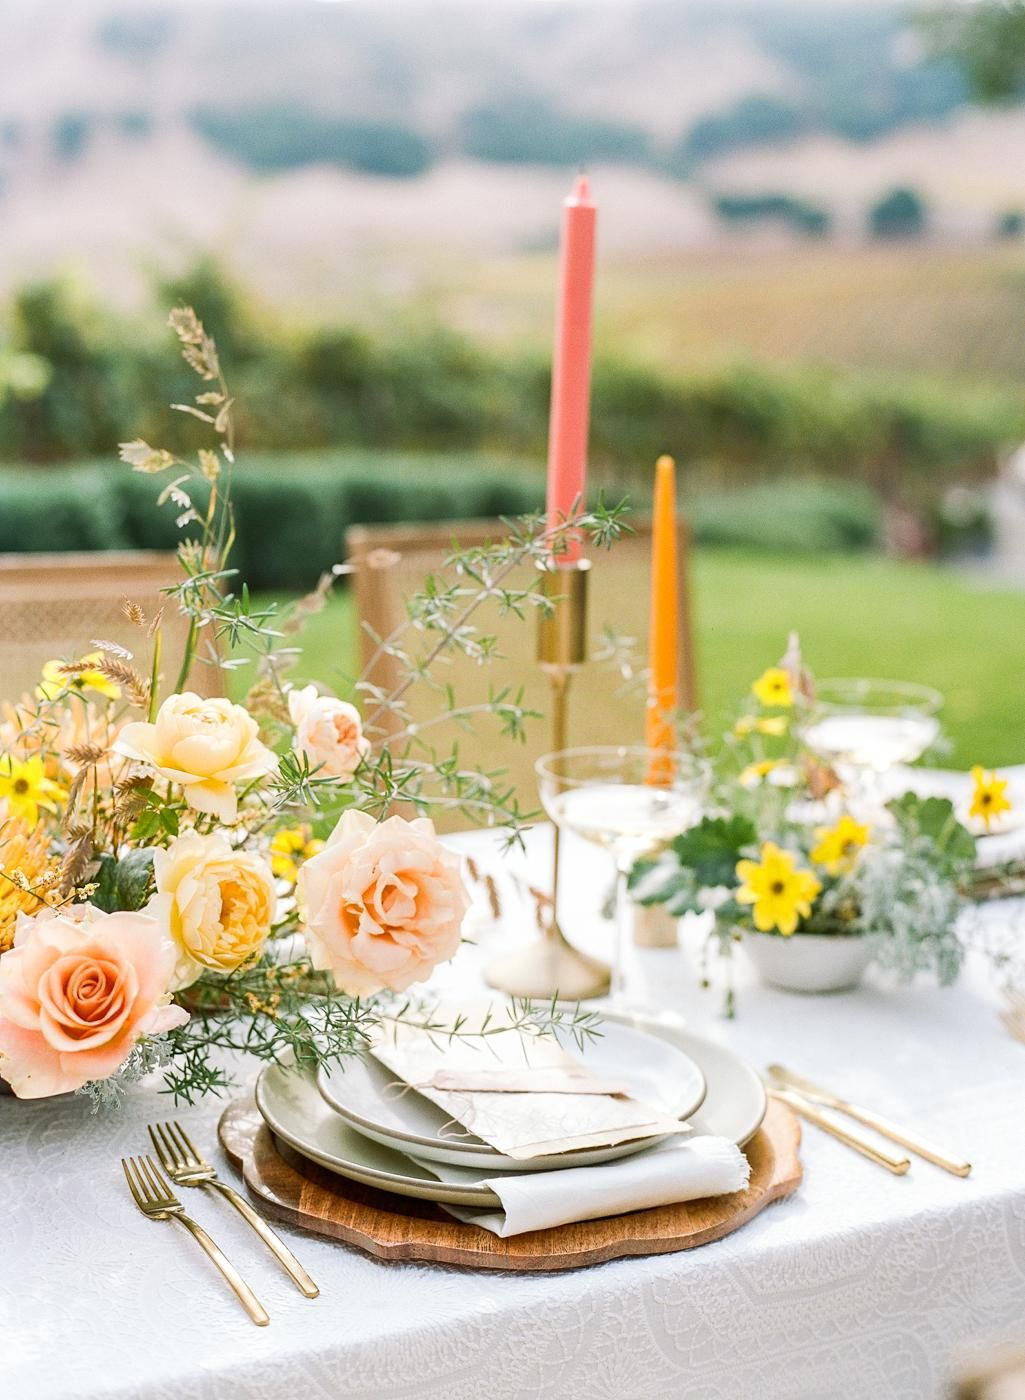 A Sunset Inspired California Inspiration Shoot That Will Steal Your Heart In 2020 Inspiration Wedding Centerpieces Wedding Flowers